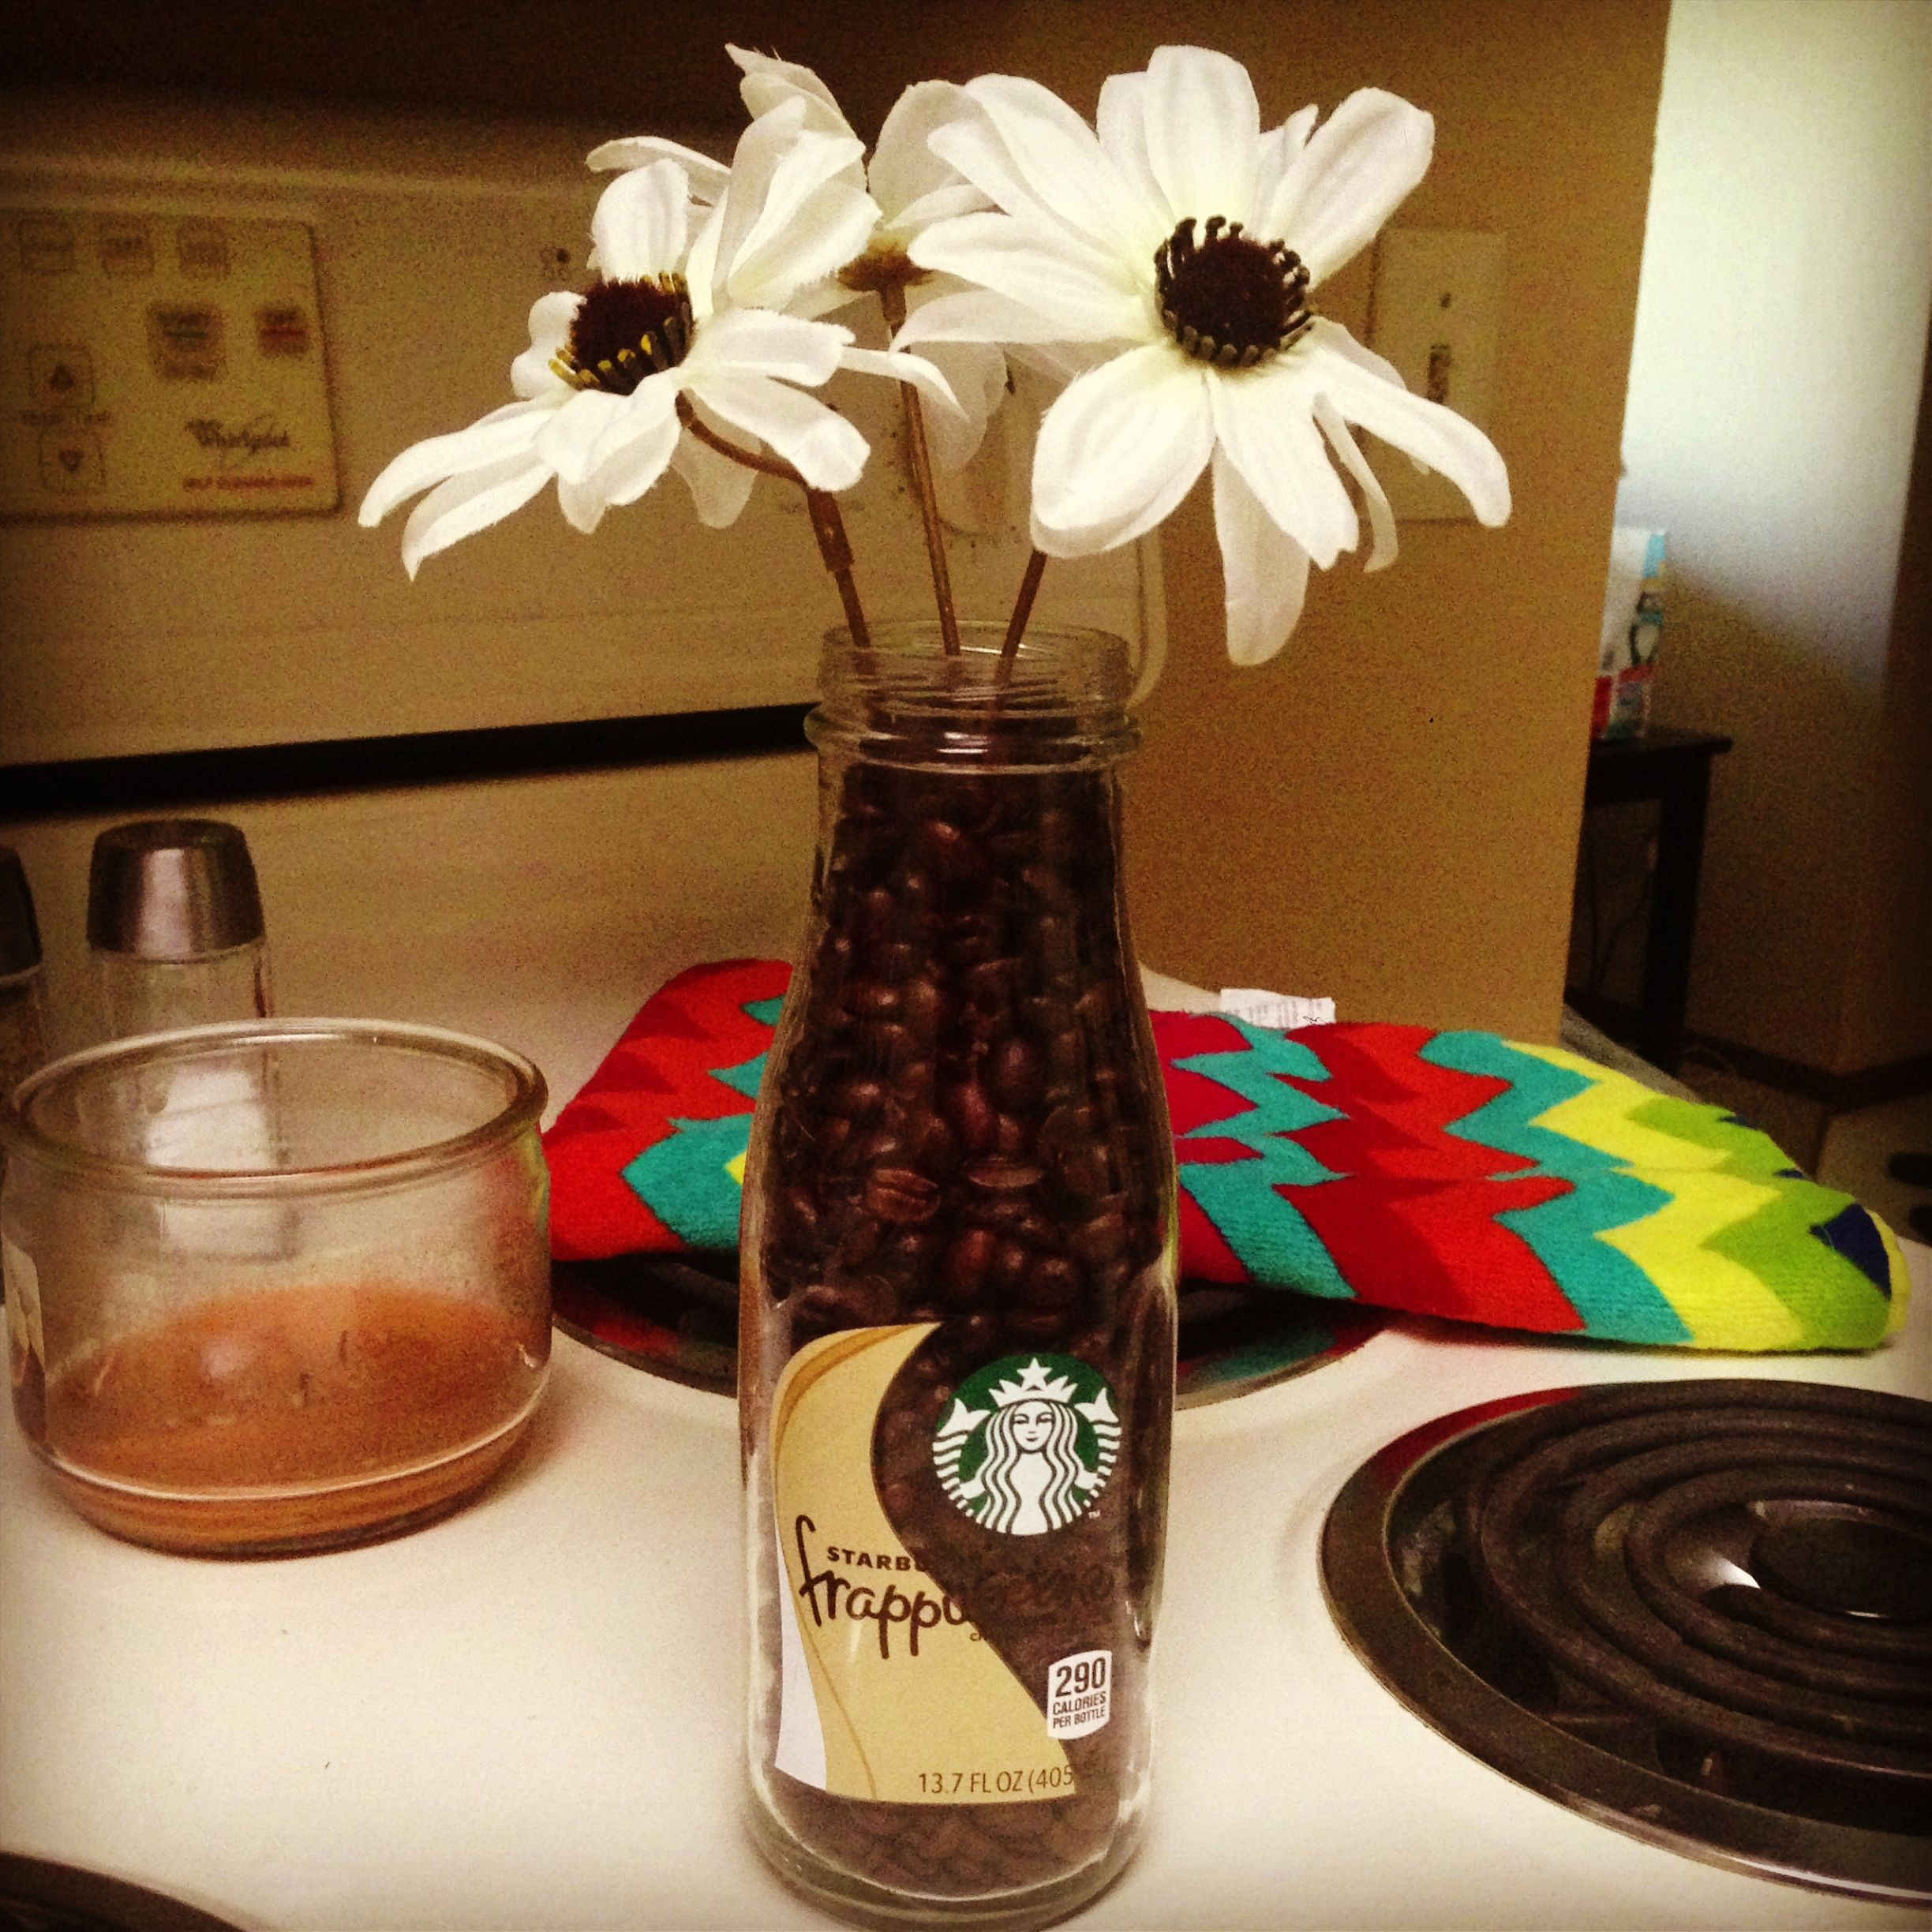 Kitchen Decor Stores: Starbucks Bottle With Coffee Beans With Some Simple